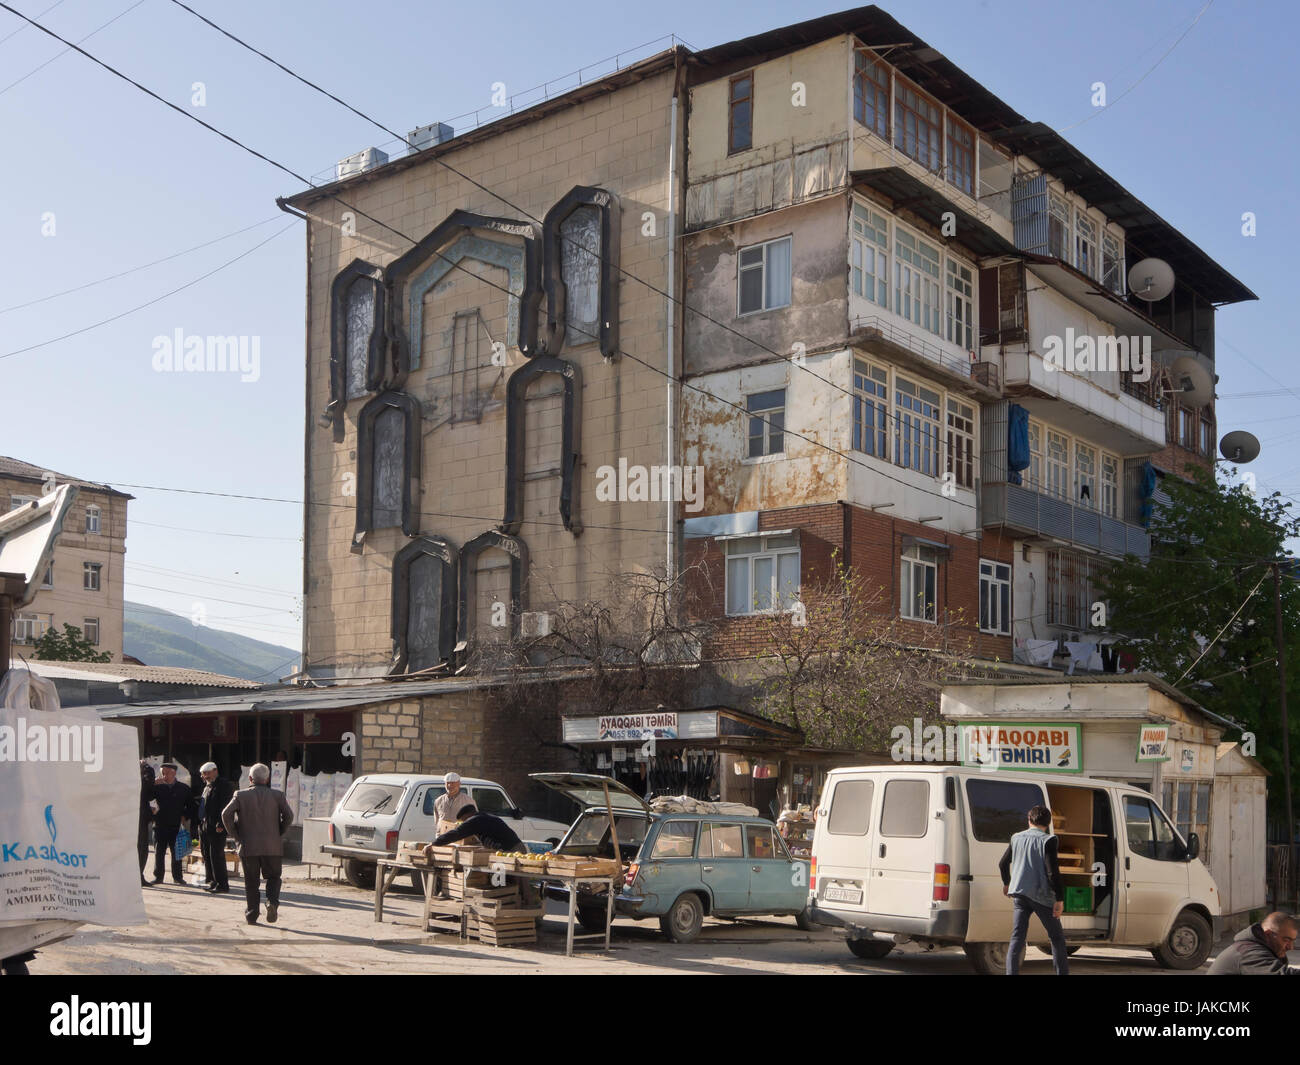 Building with old wall decorations at the  daily outdoors market in Şəki (transcribed Shaki or Sheki) in northern - Stock Image